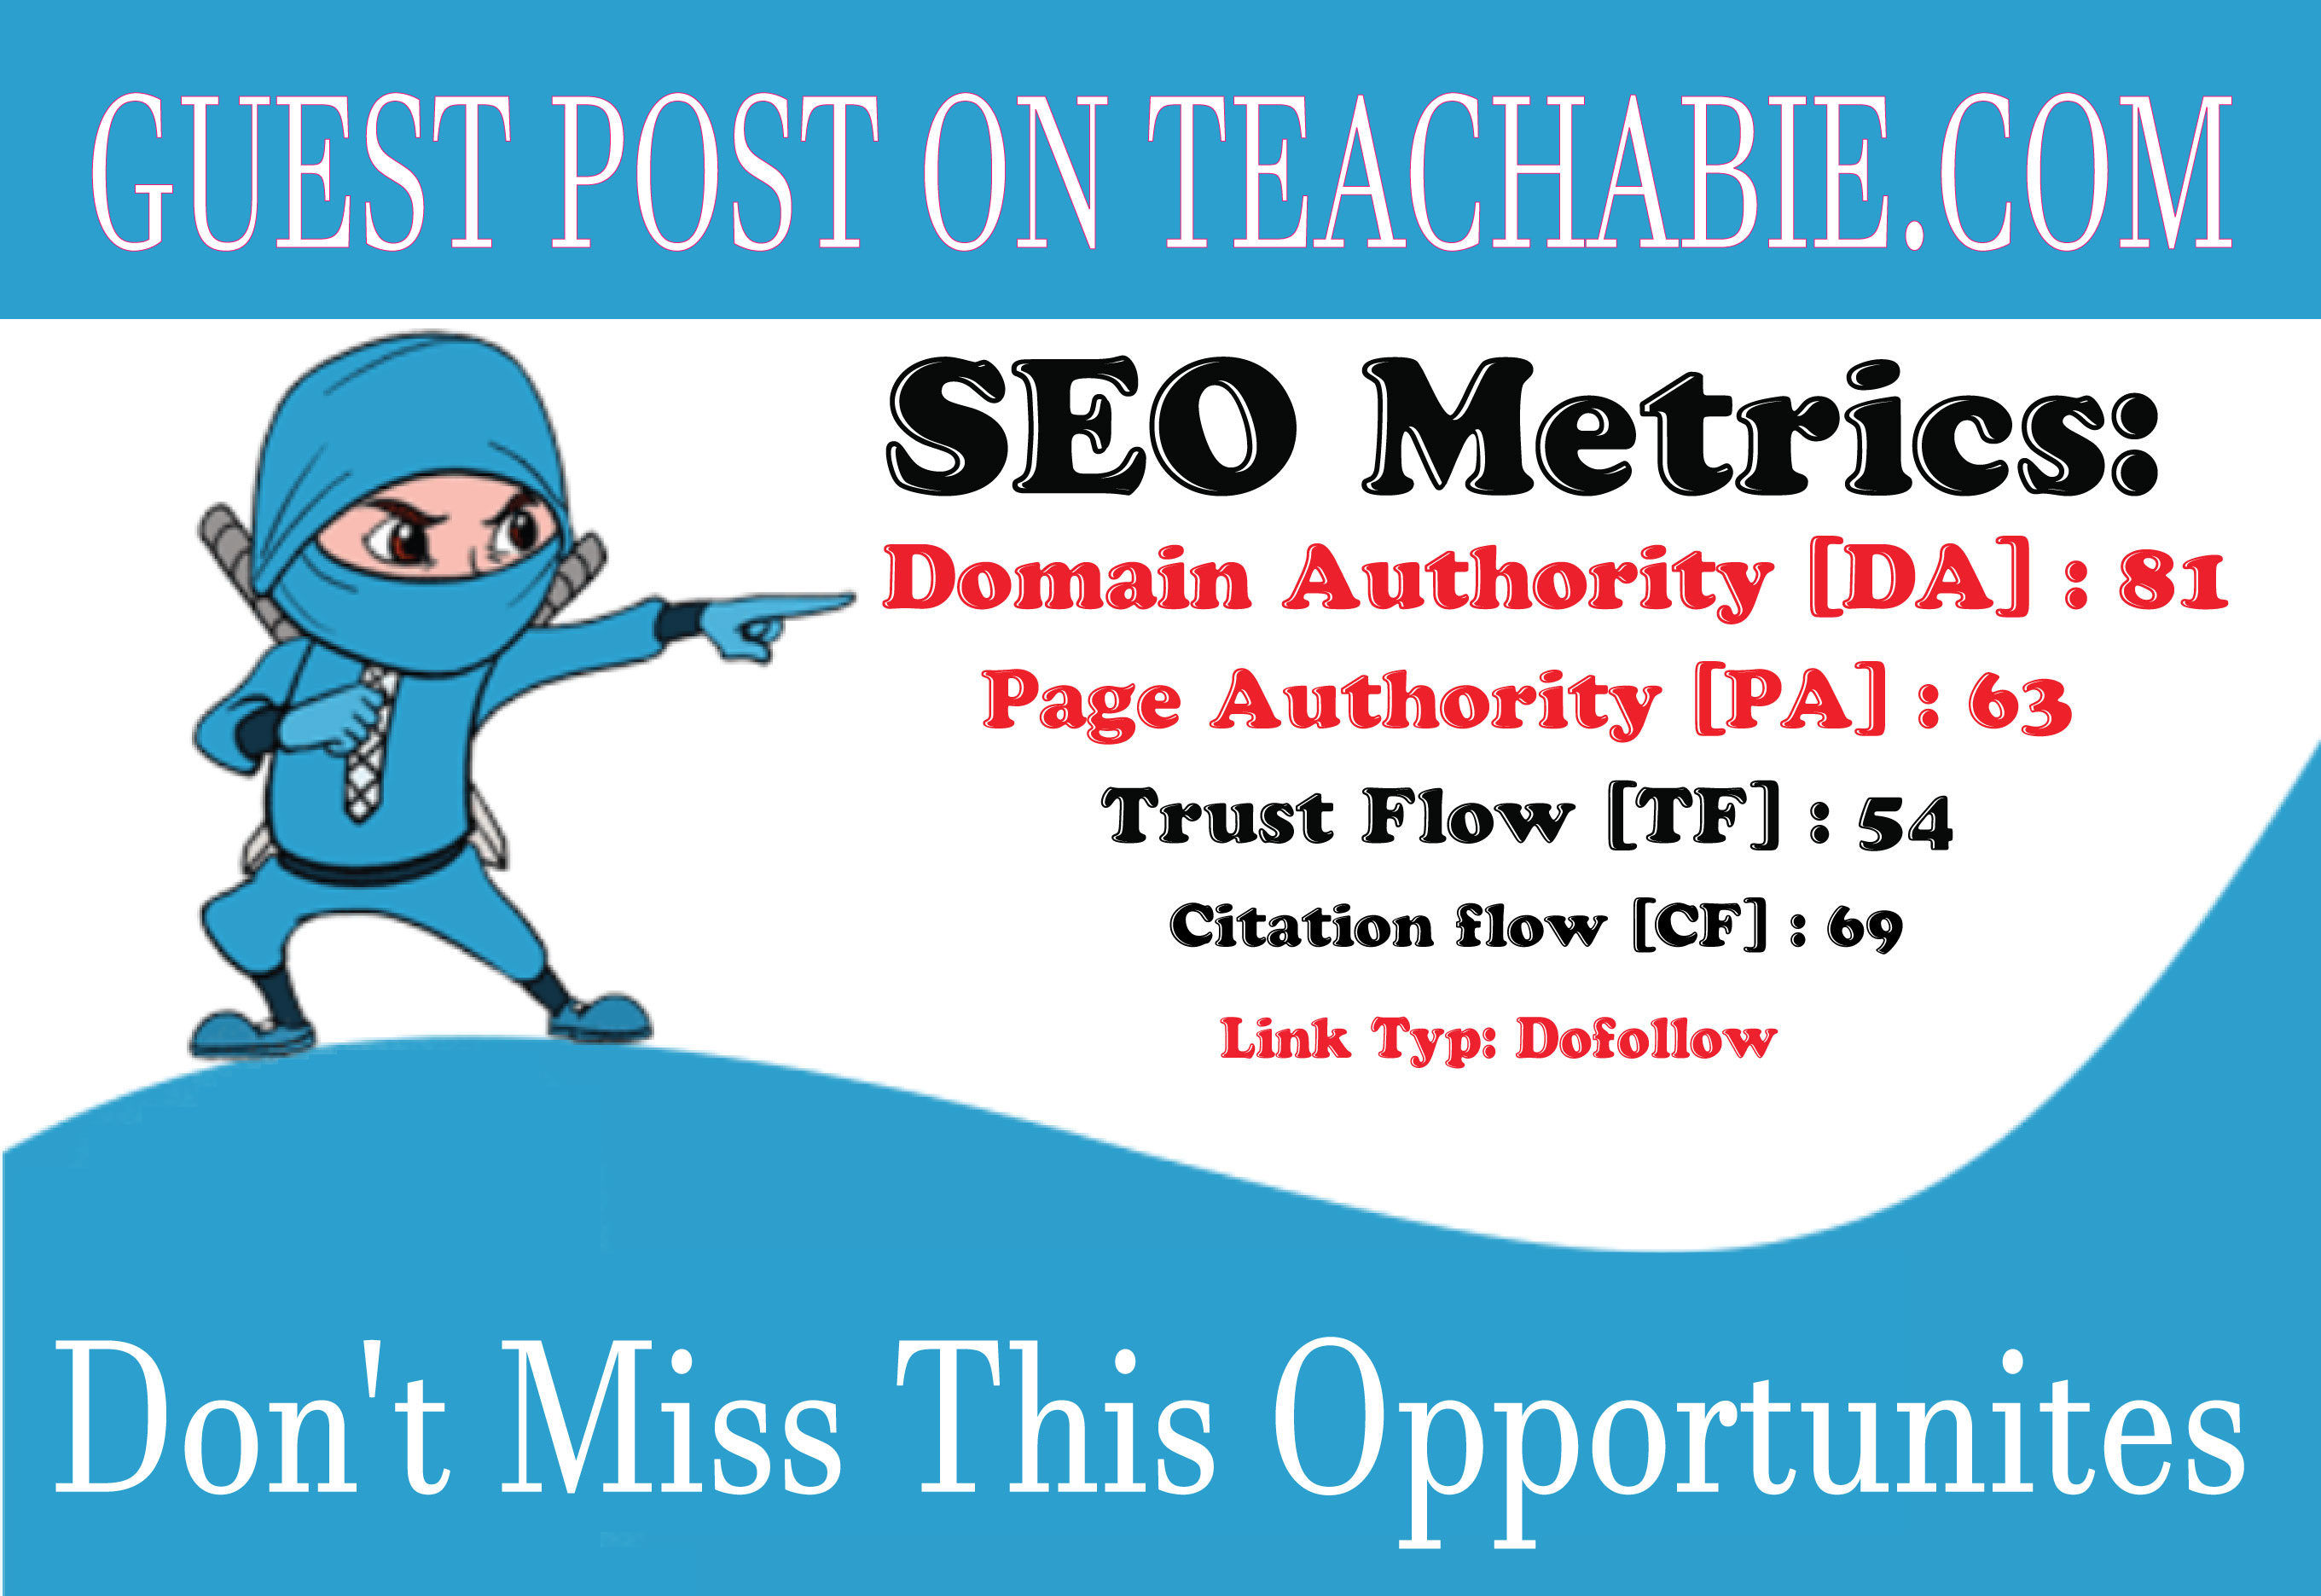 I will guest post on teachable DR90 DA 81 with Dofollow Backlinks.